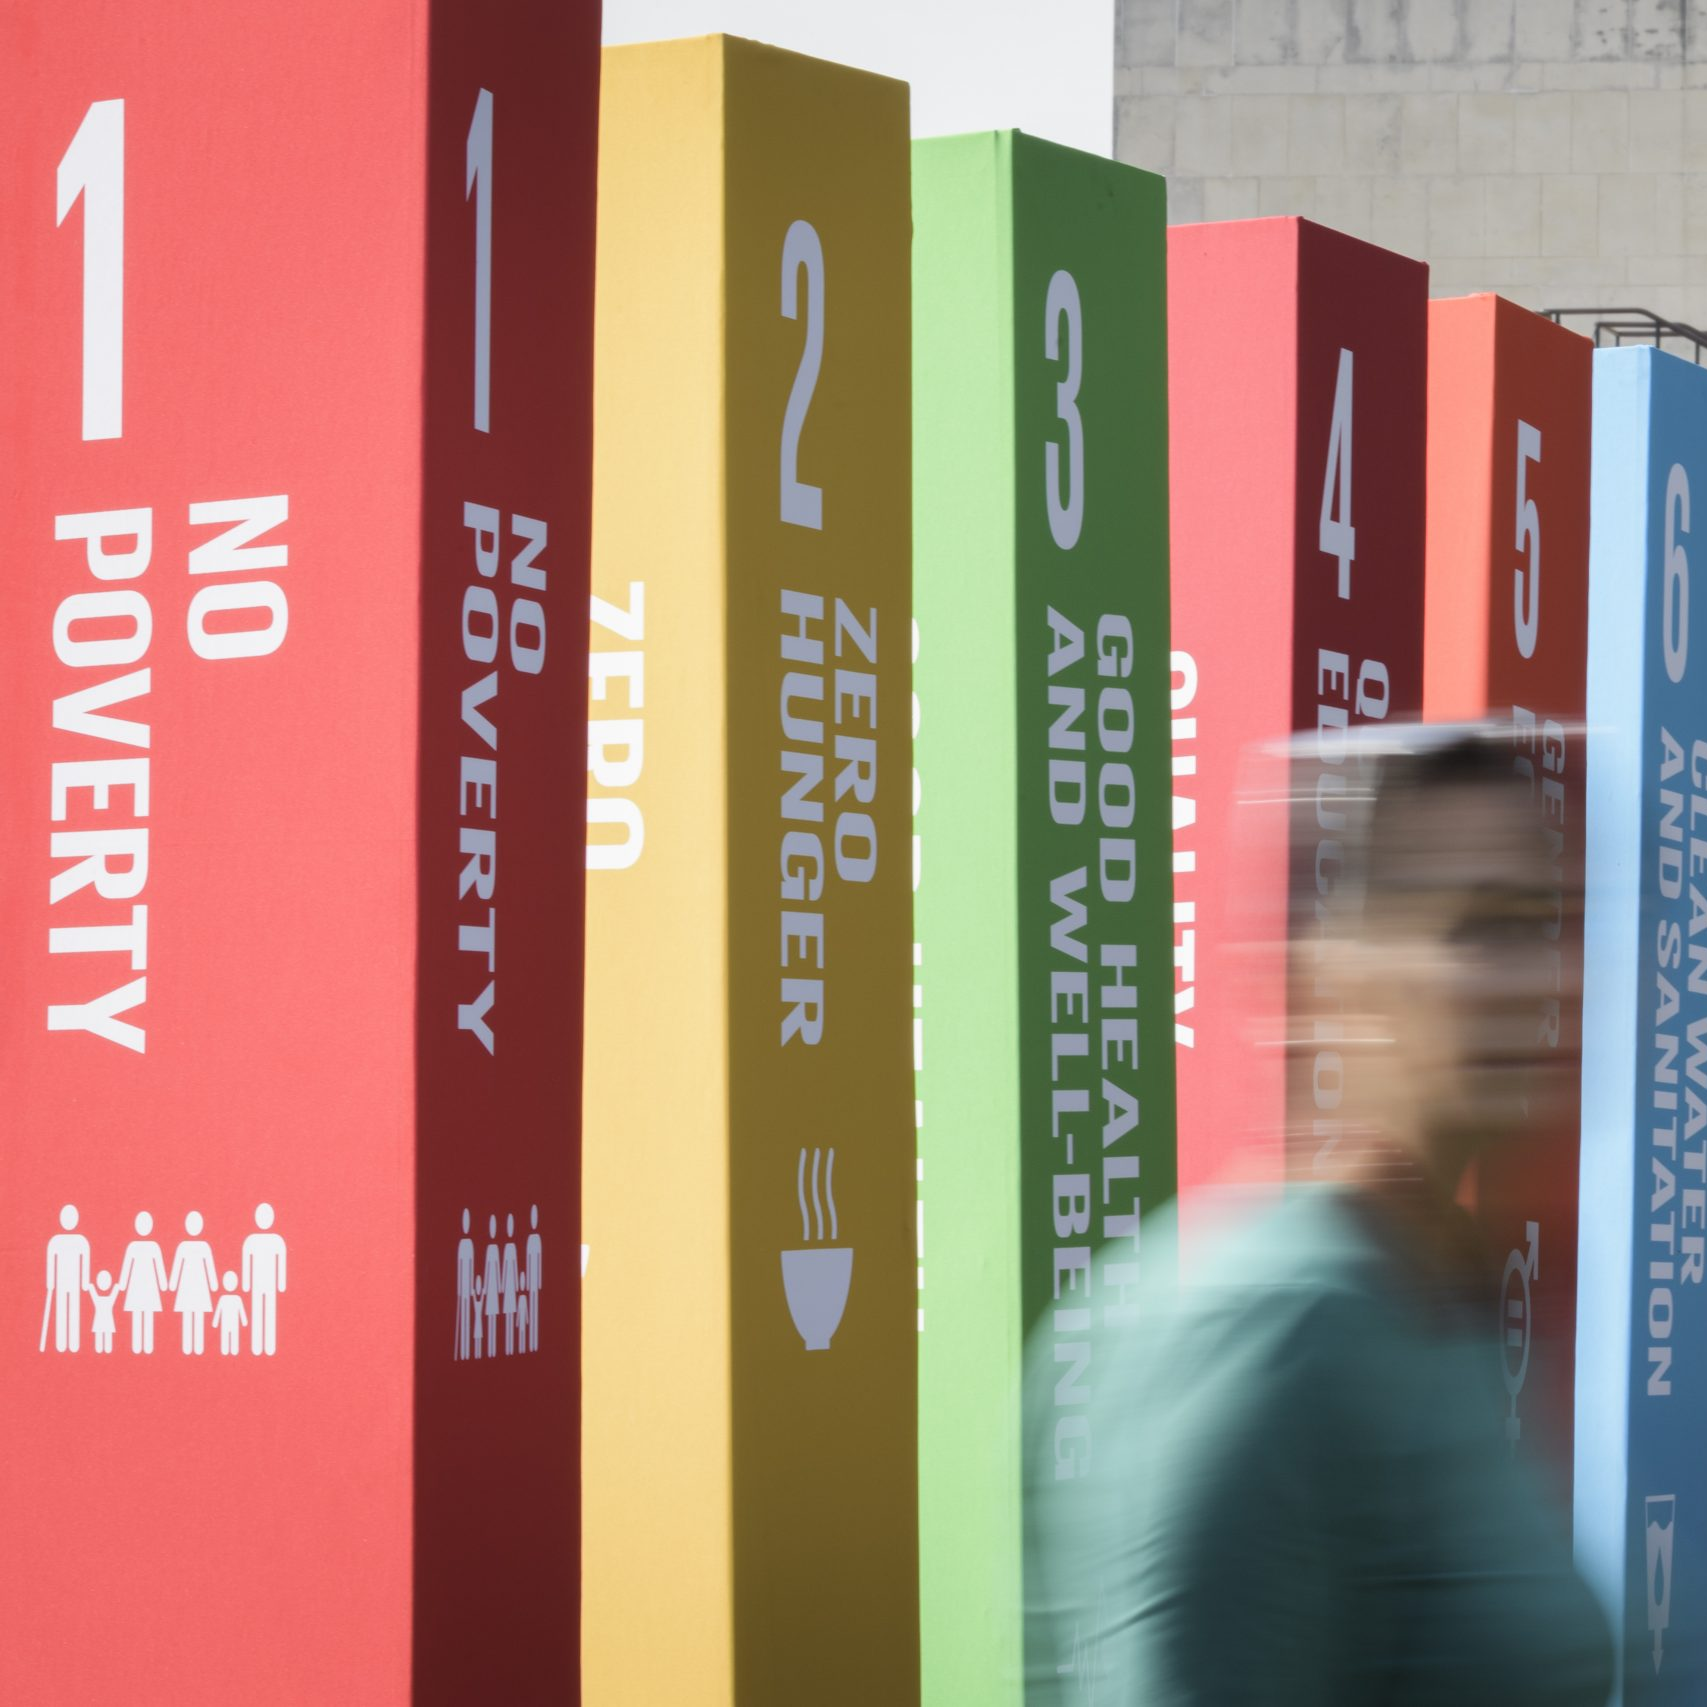 visible are 6 pillars in a range of colours, with the first 5 united nations sustainability goals printed on them